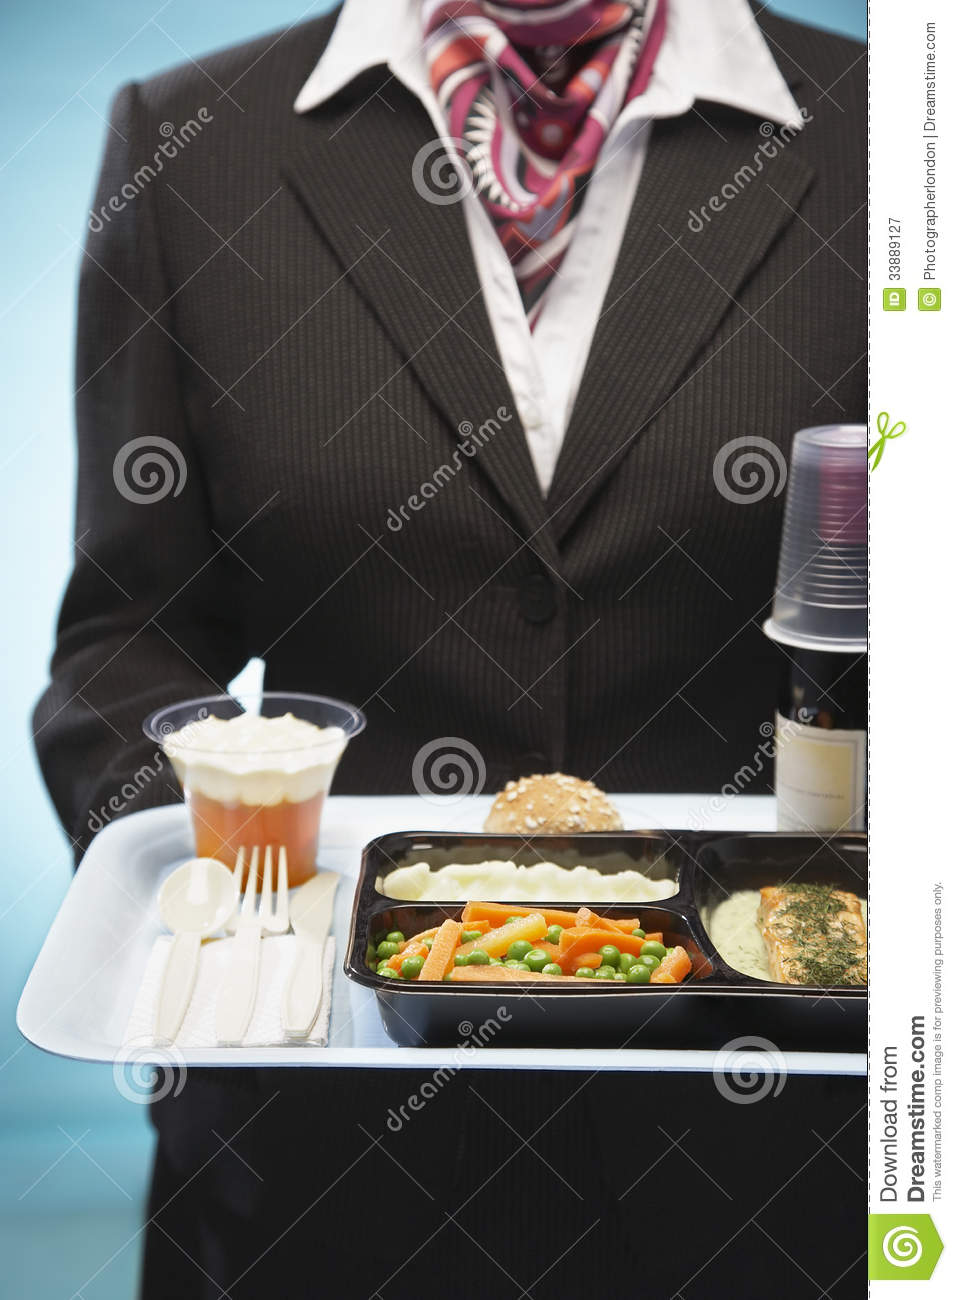 Stewardess Holding Tray With Airplane Food